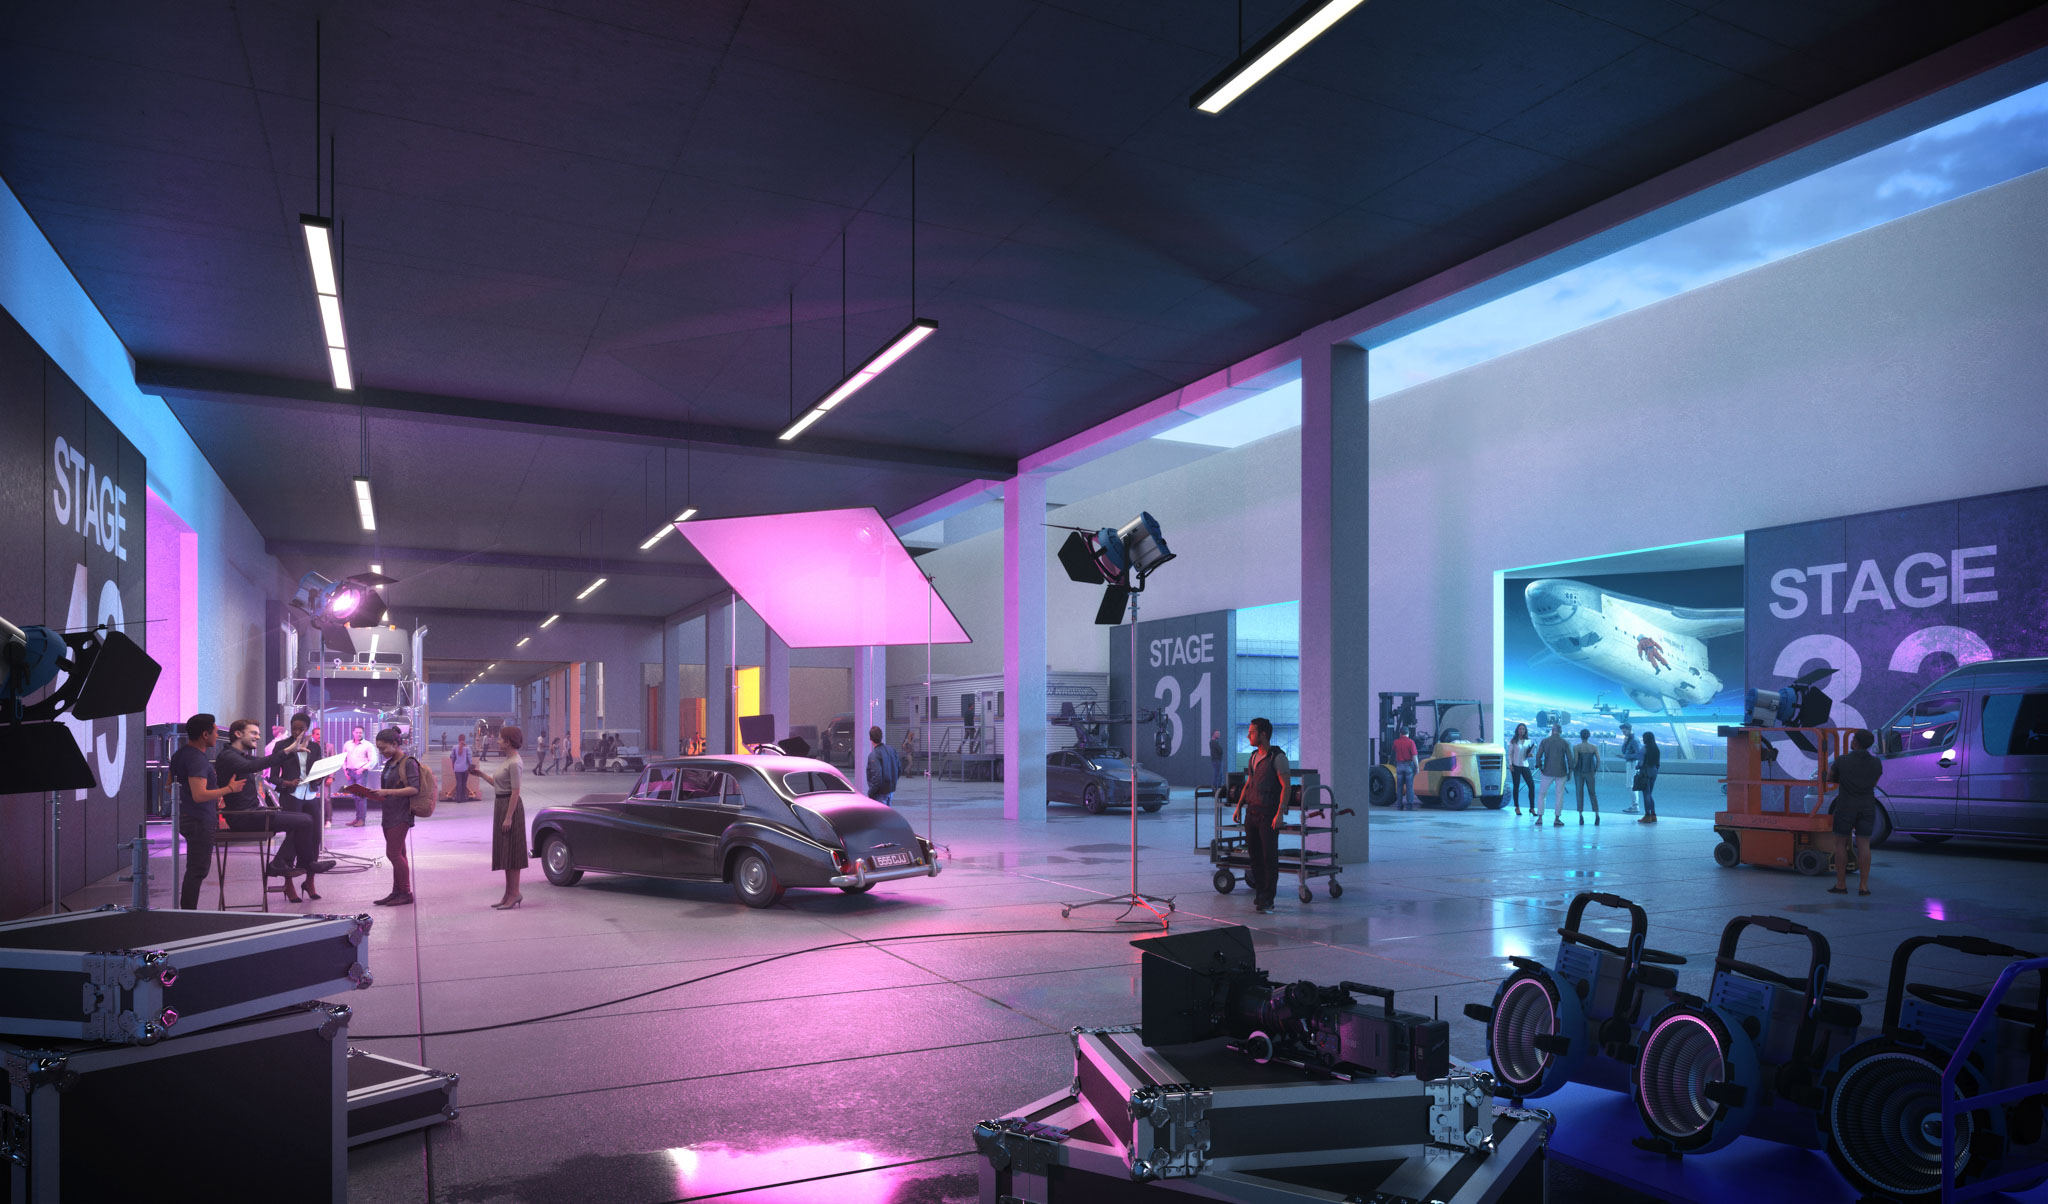 interior view of a television city production set with a car in the center and blue and pink lighting